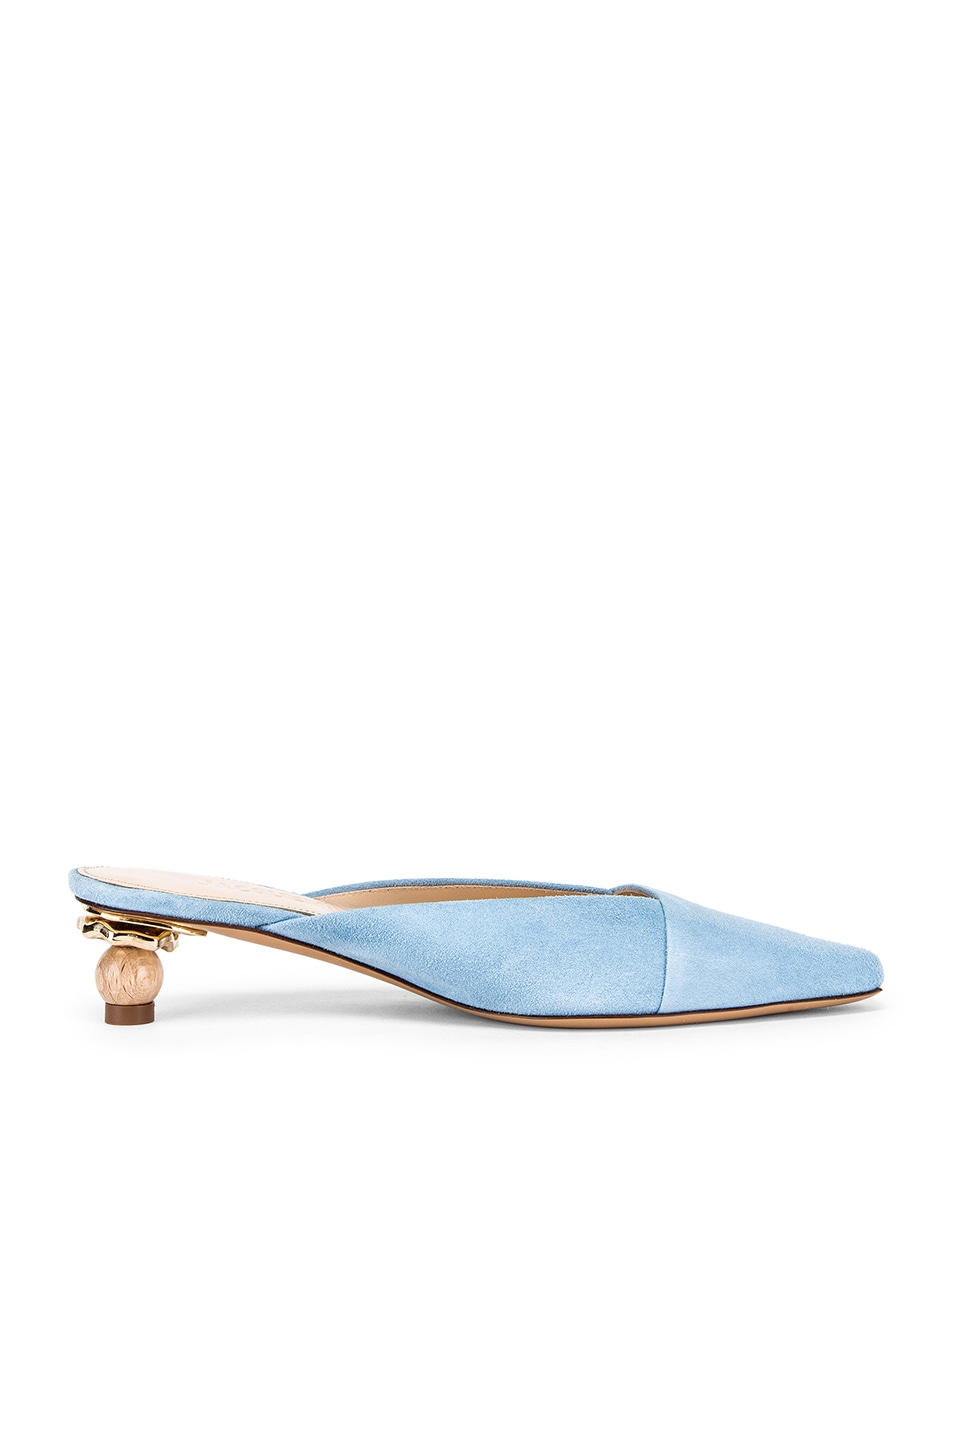 Image 6 of JACQUEMUS Maceio Mules in Light Blue Suede